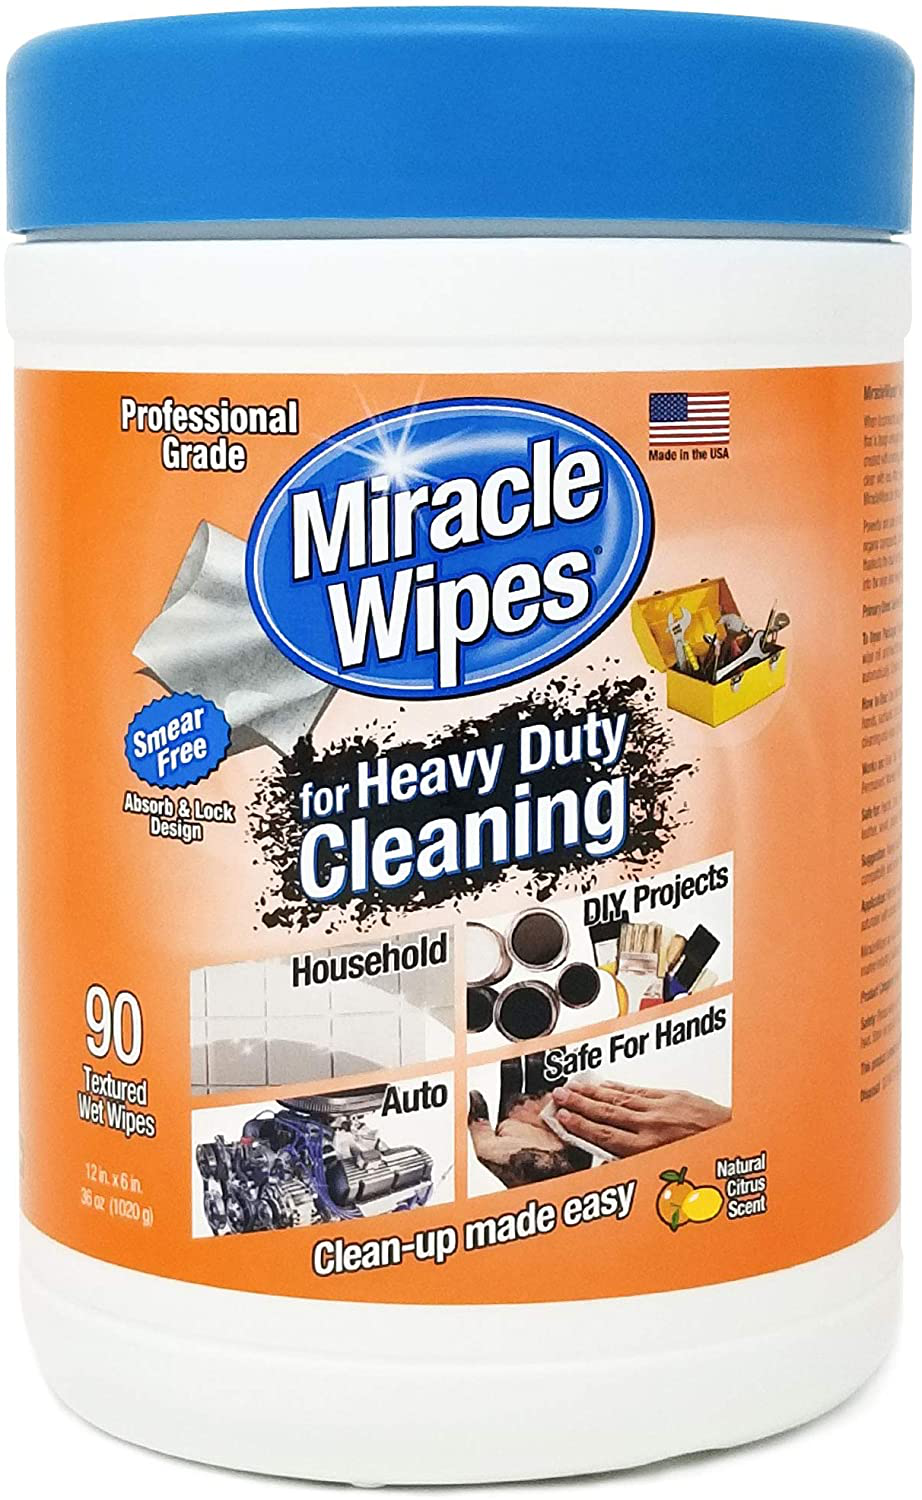 MiracleWipes for Heavy Duty Cleaning (90 Count) - All Purpose Cleaner, Kitchens, Bathrooms, Countertops, Hands, Indoors, Outdoors - Removes Grease, Grime, Crayon, Dirt & More